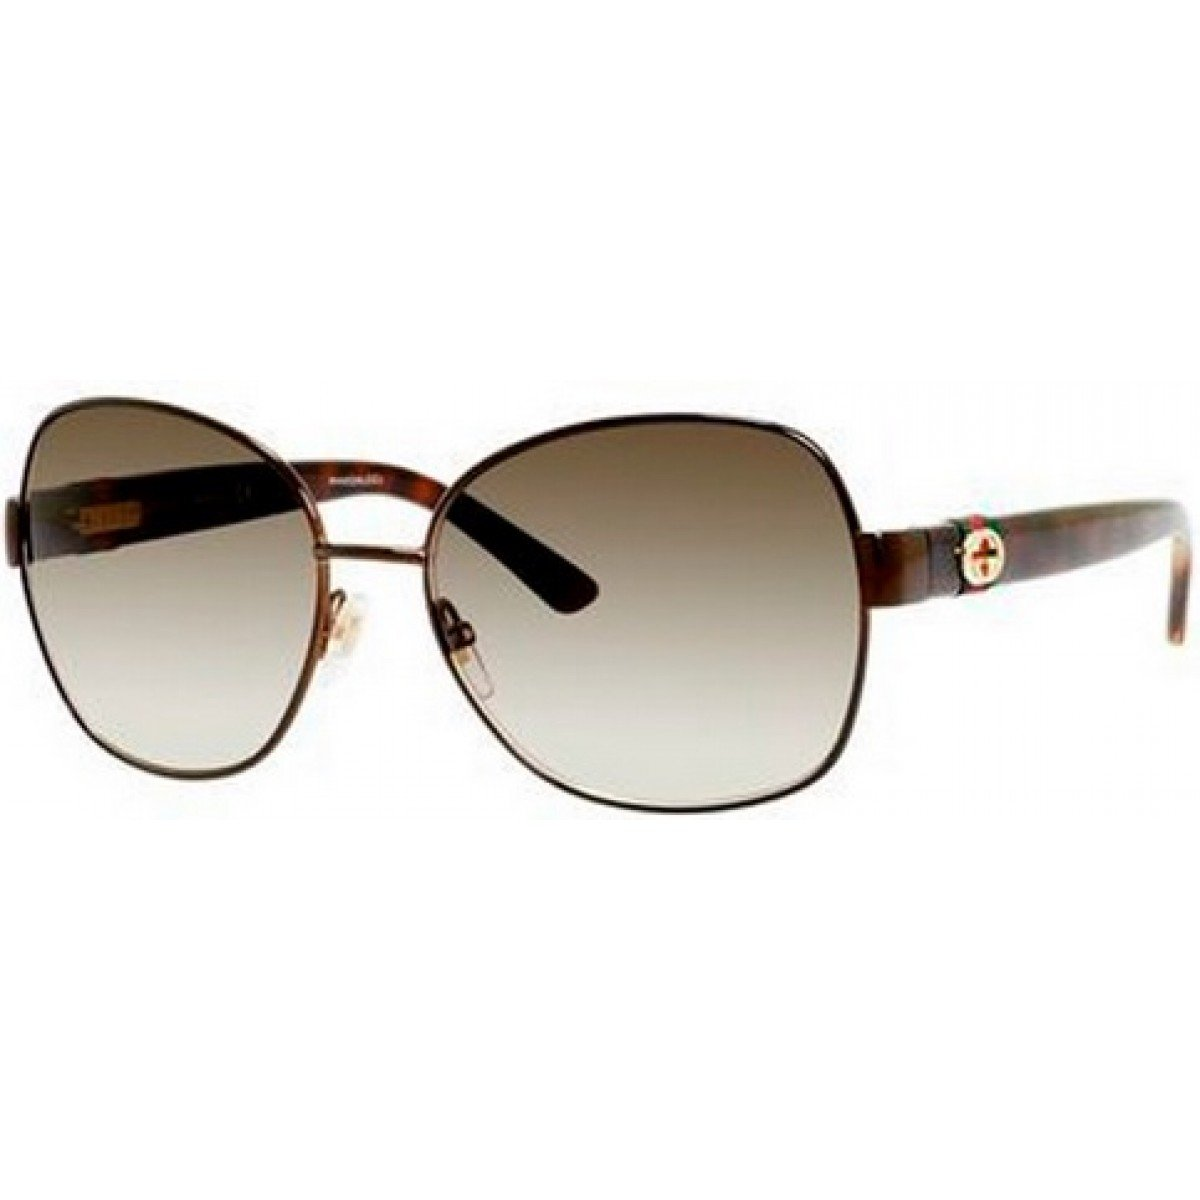 e435f95ab72 Amazon.com  Gucci GG4242 s 0YRHA Women s Sunglasses OPTYL  Clothing